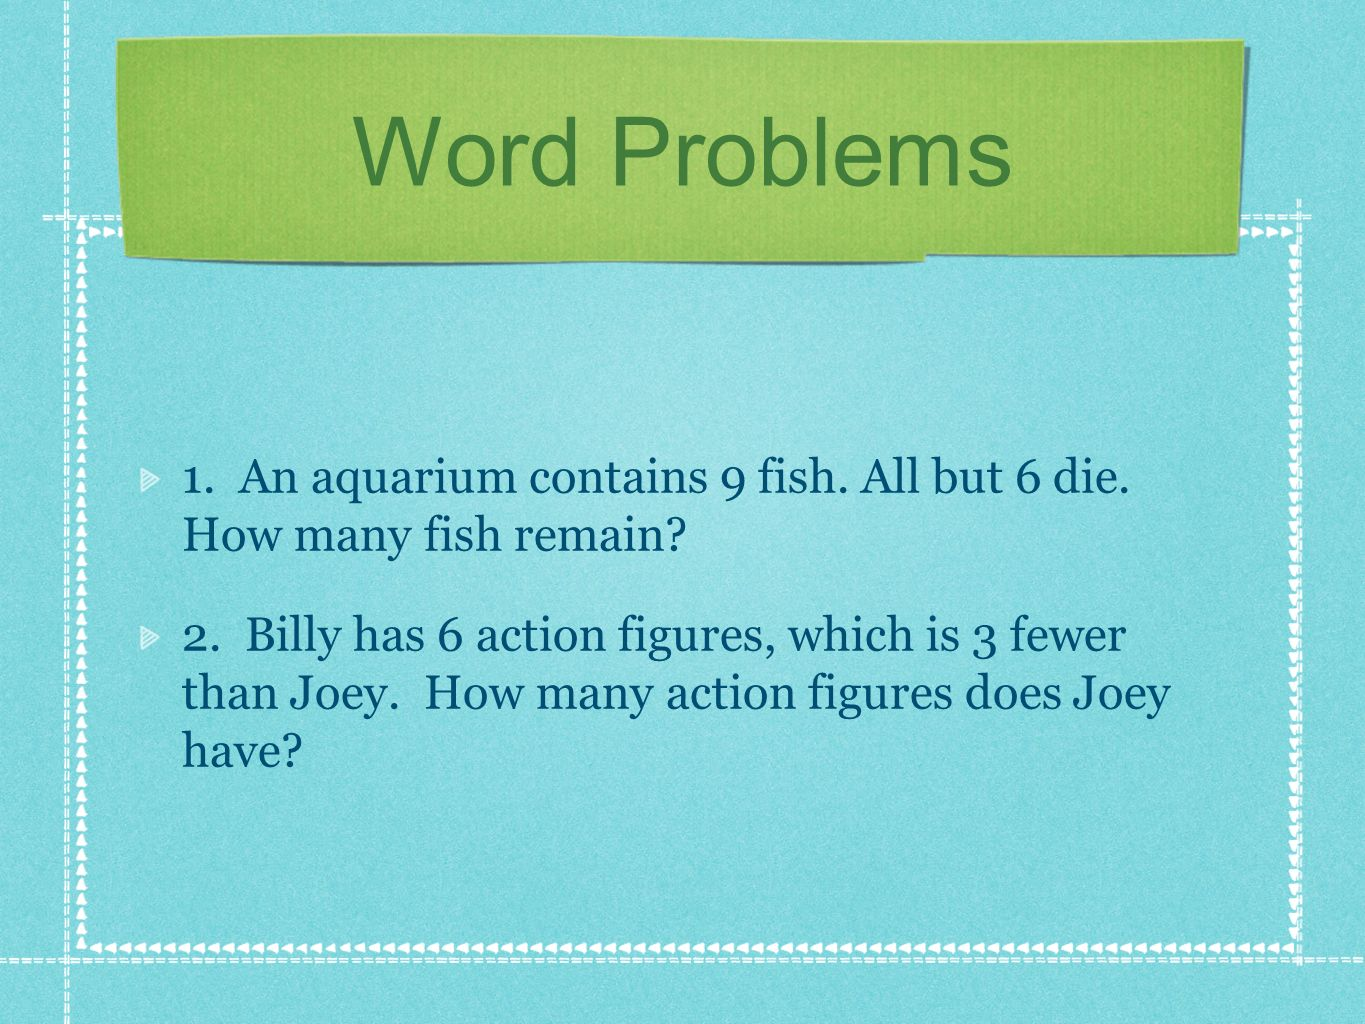 Word Problems 1. An aquarium contains 9 fish. All but 6 die. How many fish remain? 2. Billy has 6 action figures, which is 3 fewer than Joey. How many